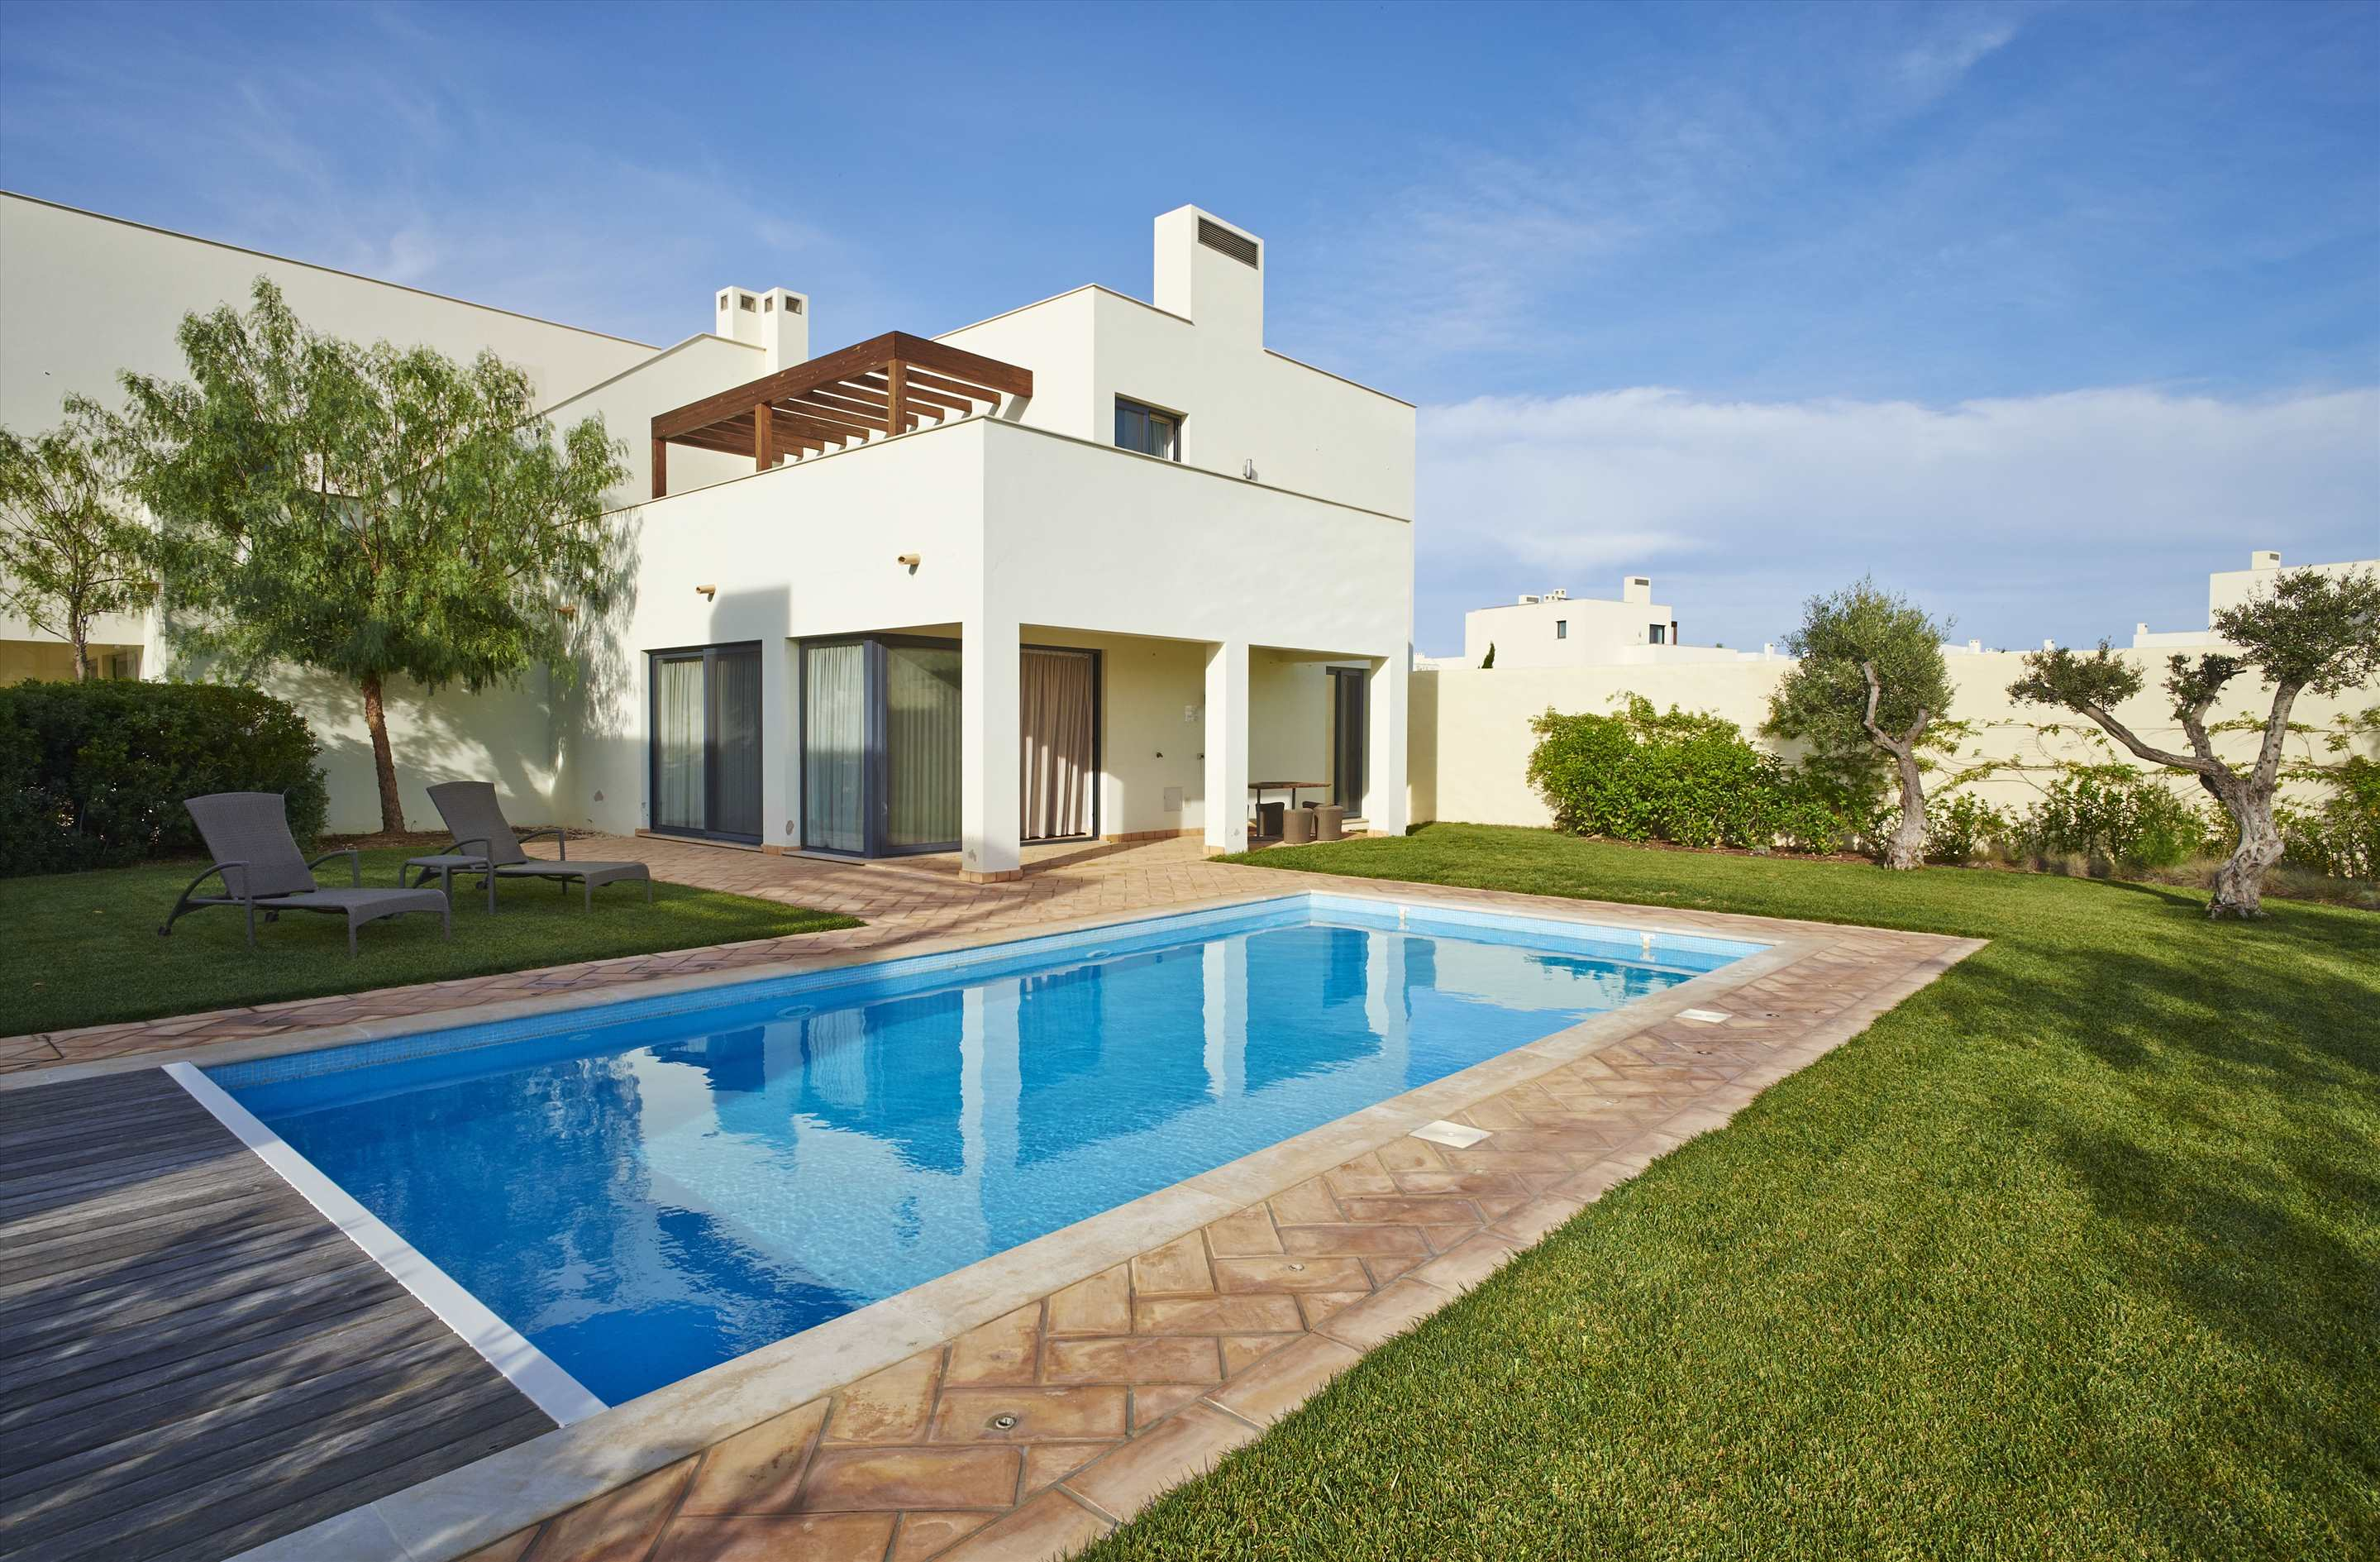 Martinhal Village Pinewood House with private pool, Master Deluxe Three Bedrooms, 3 bedroom villa in Martinhal Sagres, Algarve Photo #1